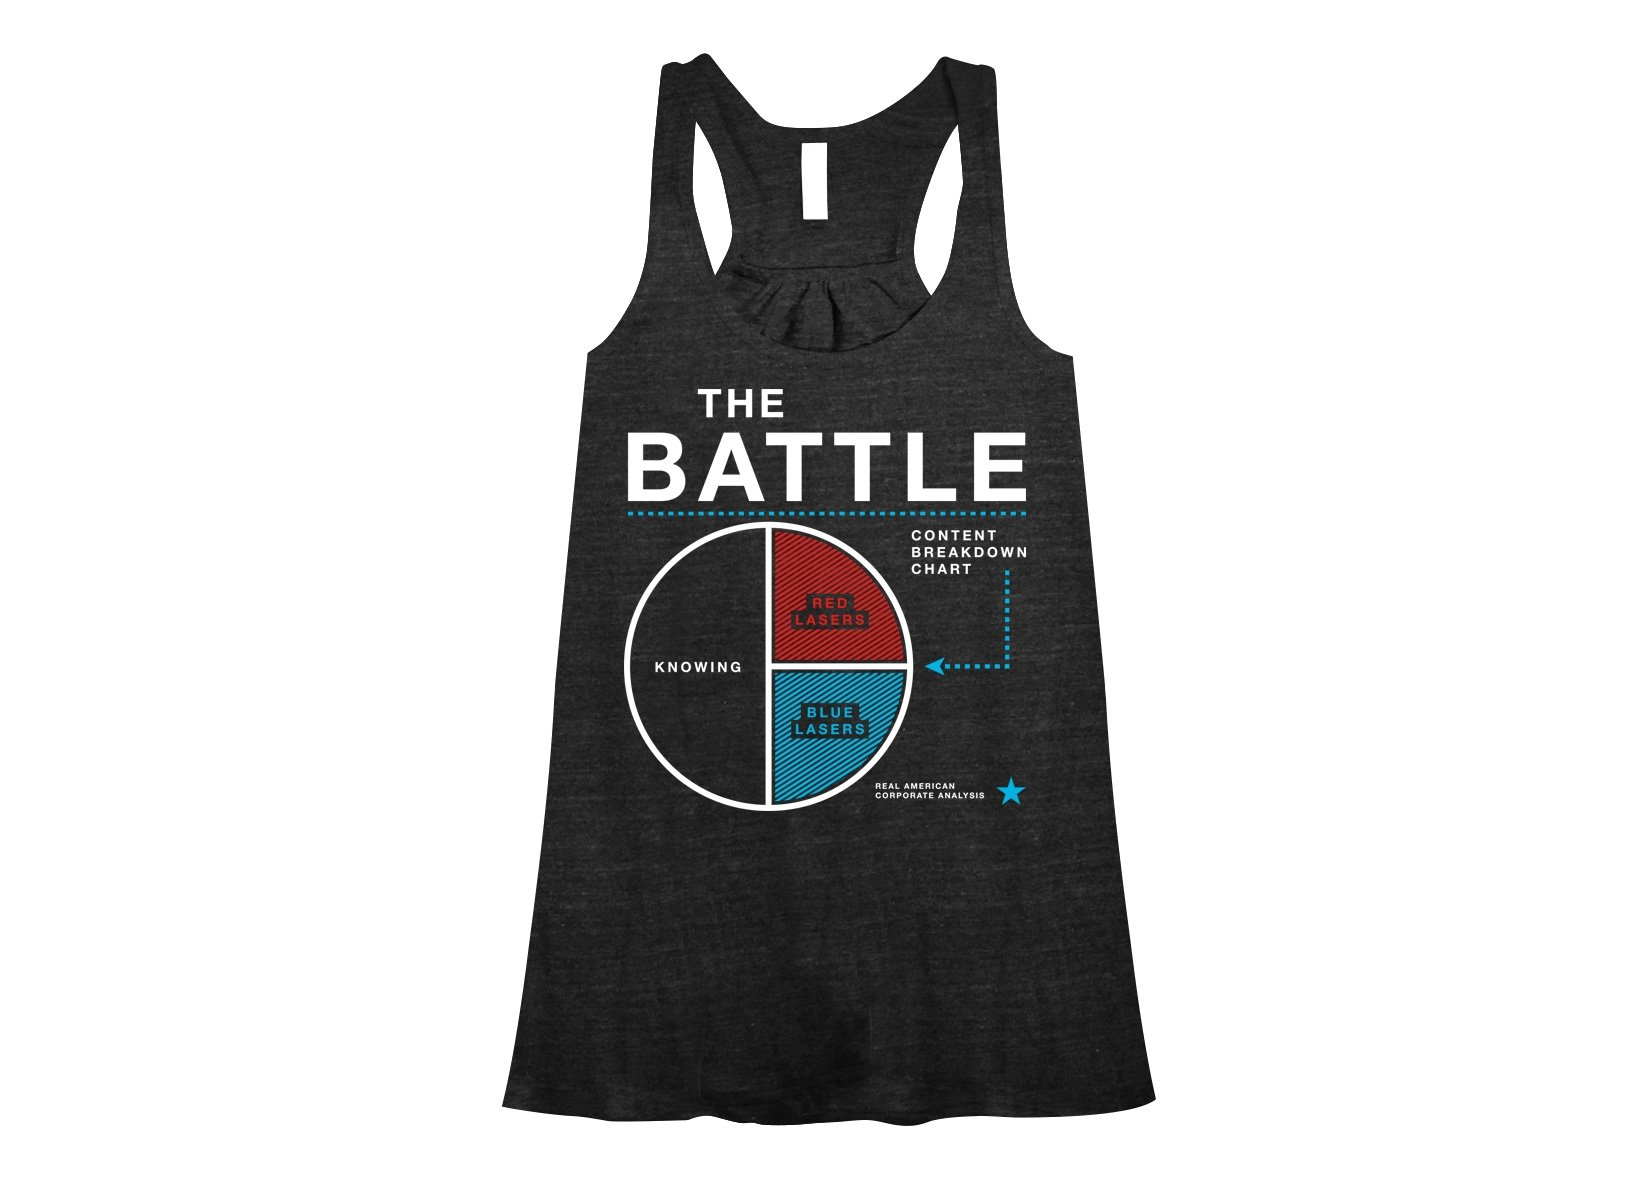 The Battle on Womens Tanks T-Shirt